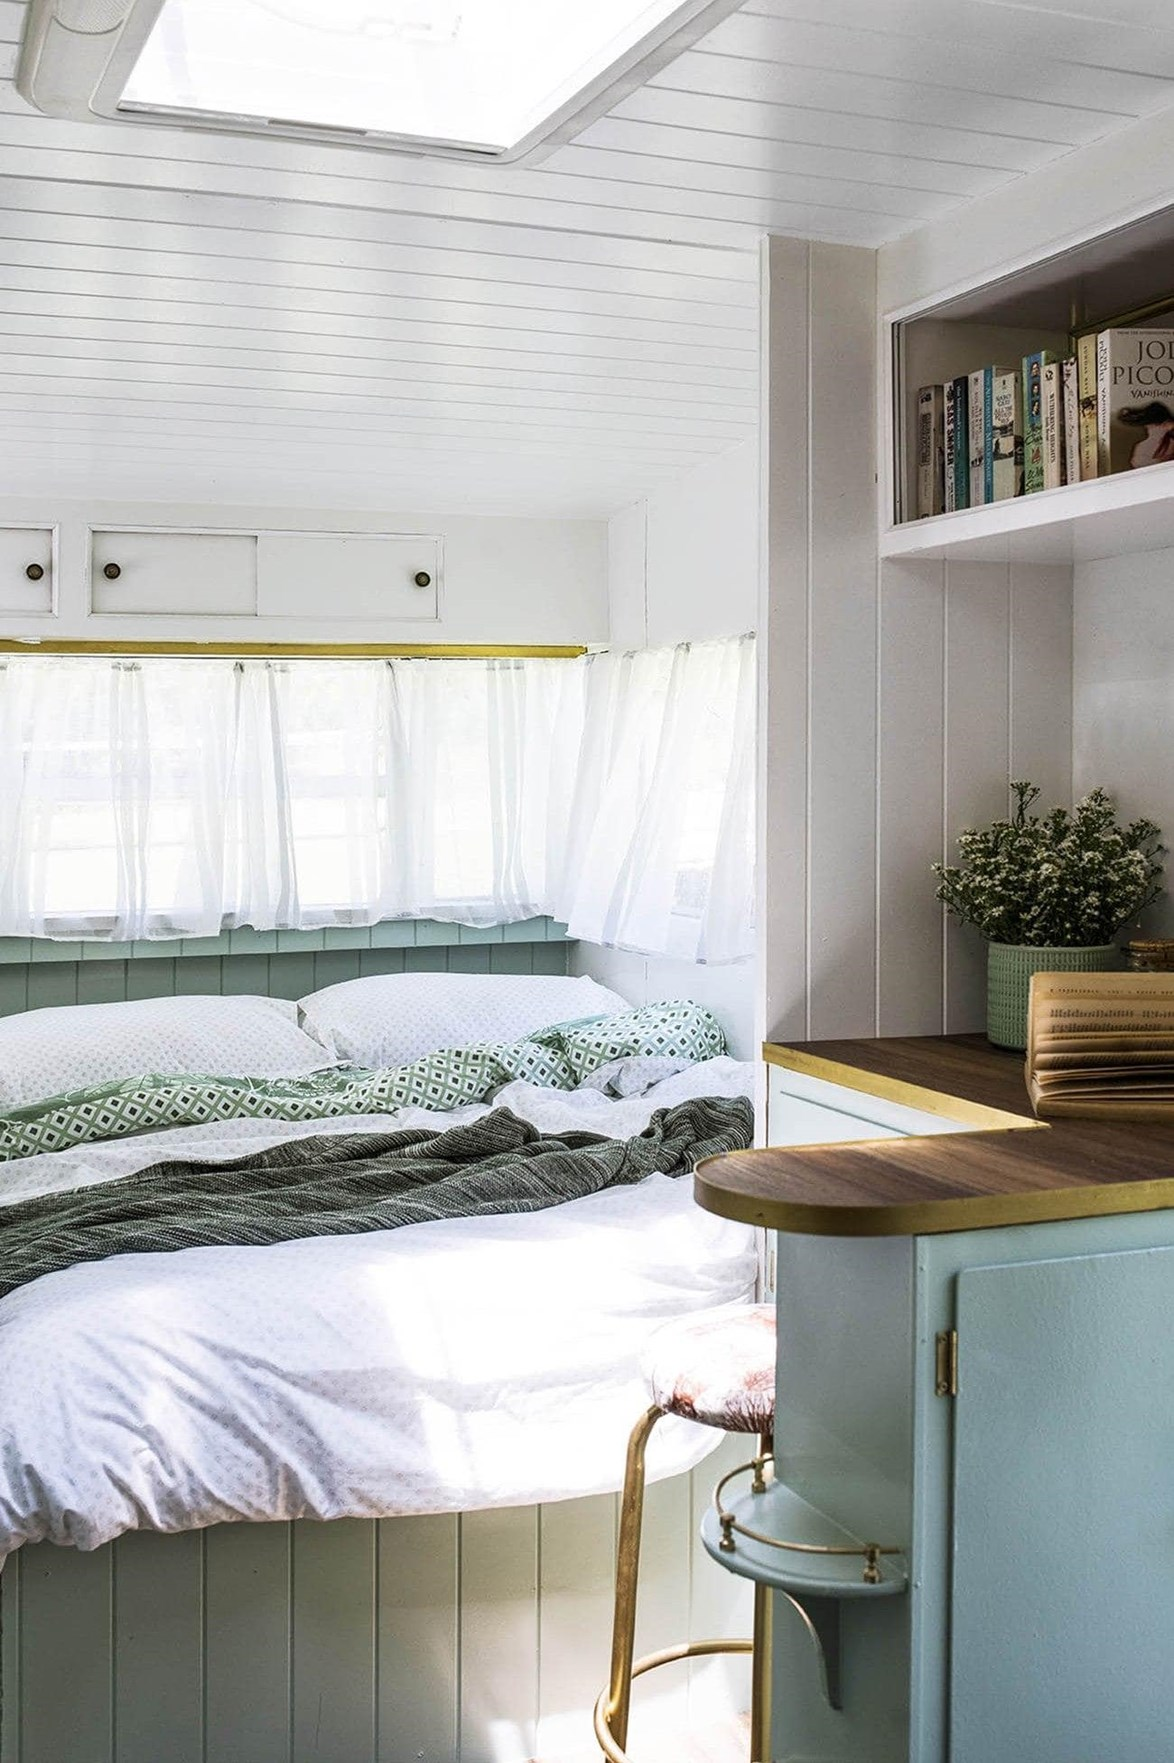 "<p>**TO CREATE THE ILLUSION OF SCALE IN SMALL SPACES**<p> <p>In a tiny space, there really isn't much wall space to work with. Adding a series of artworks could close the space in, while beautifully styled shelving just isn't practical. This [vintage caravan](https://www.homestolove.com.au/inside-michael-and-carlenes-holiday-home-transformation-18527|target=""_blank"") , restored by Michael and Carlene, feels spacious and interesting thanks to the panelled walls and ceiling. The combination of vertical and horizontal lines also makes the tiny space feel bigger than it actually is.<p> <p>*Story: Inside Out*<P>"